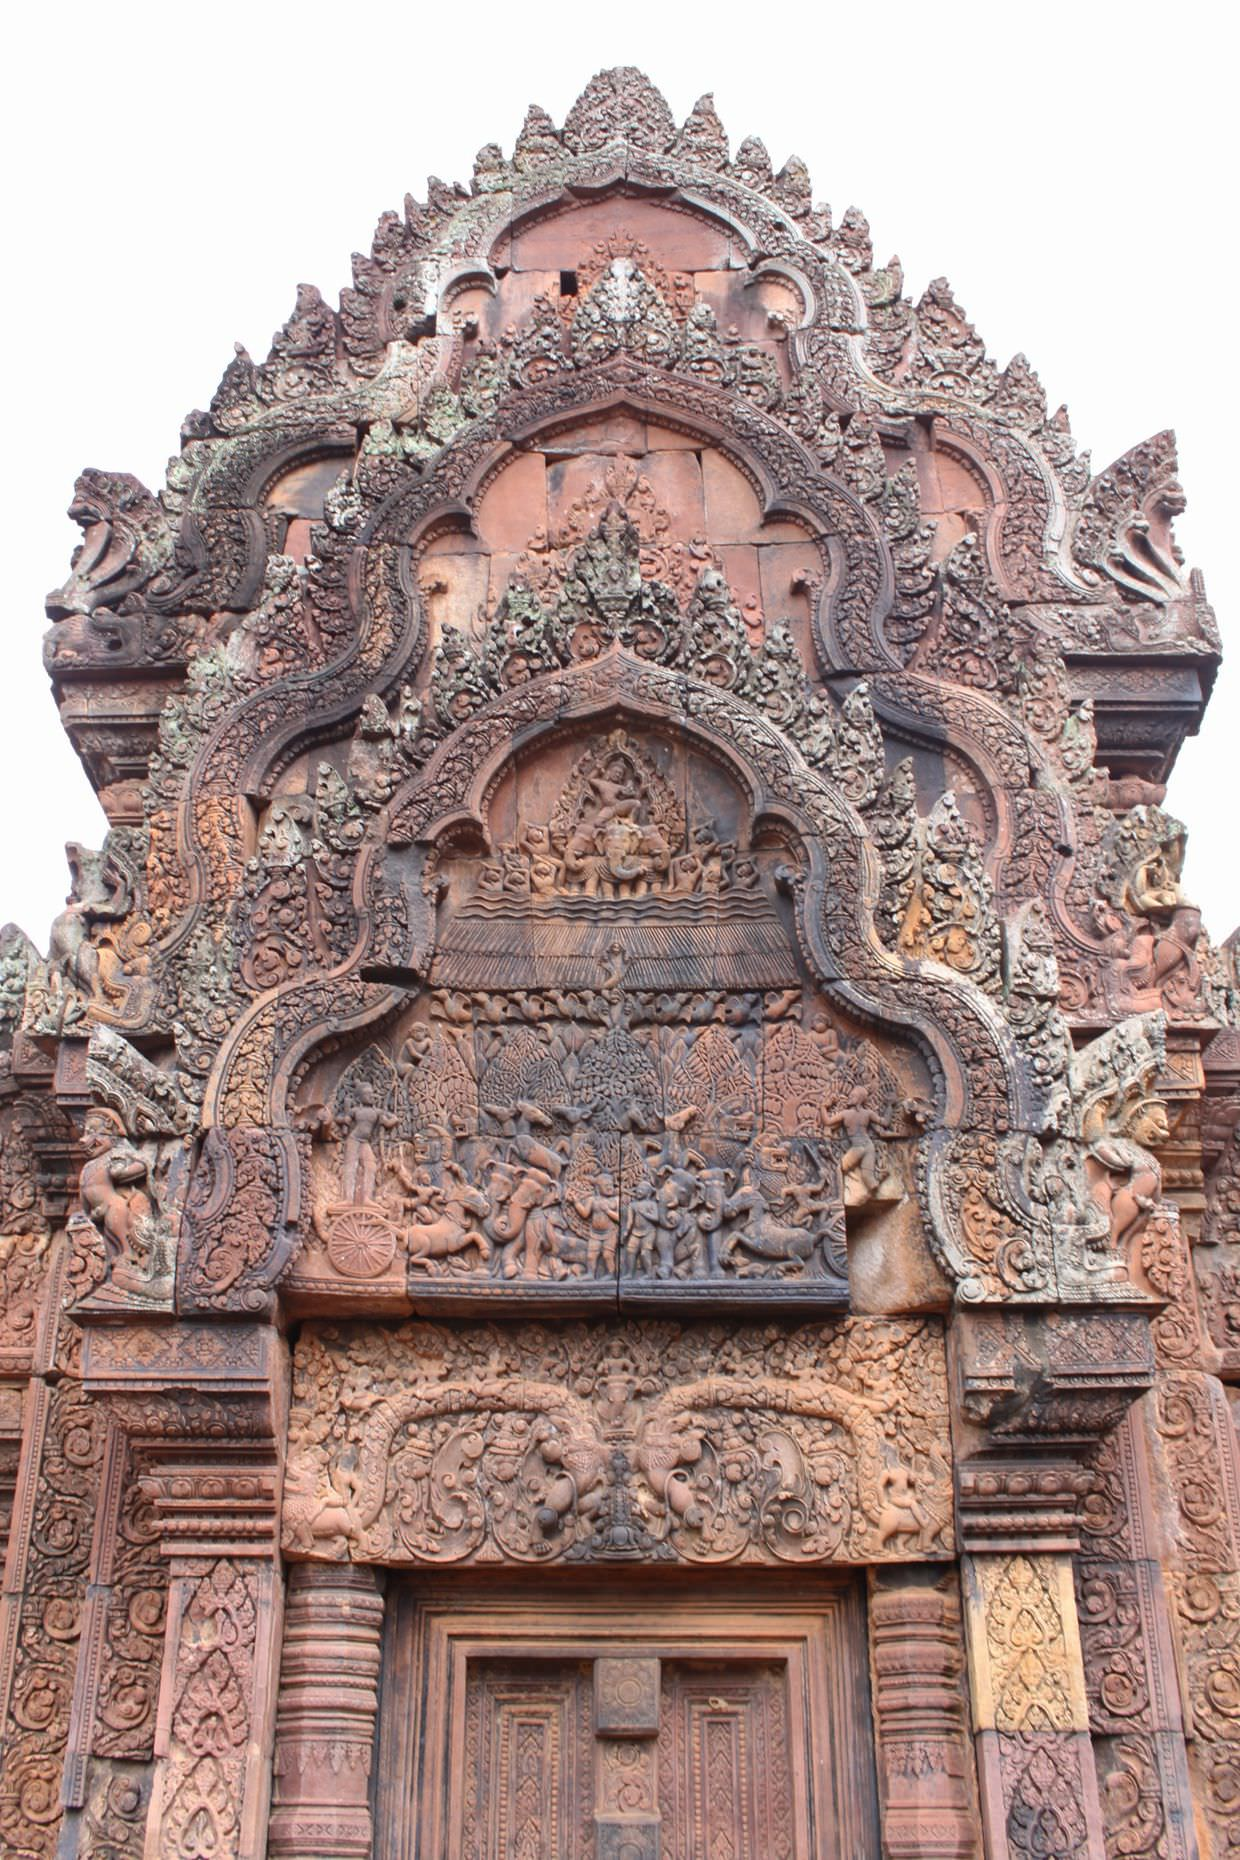 Sandstone carvings at Banteay Srei